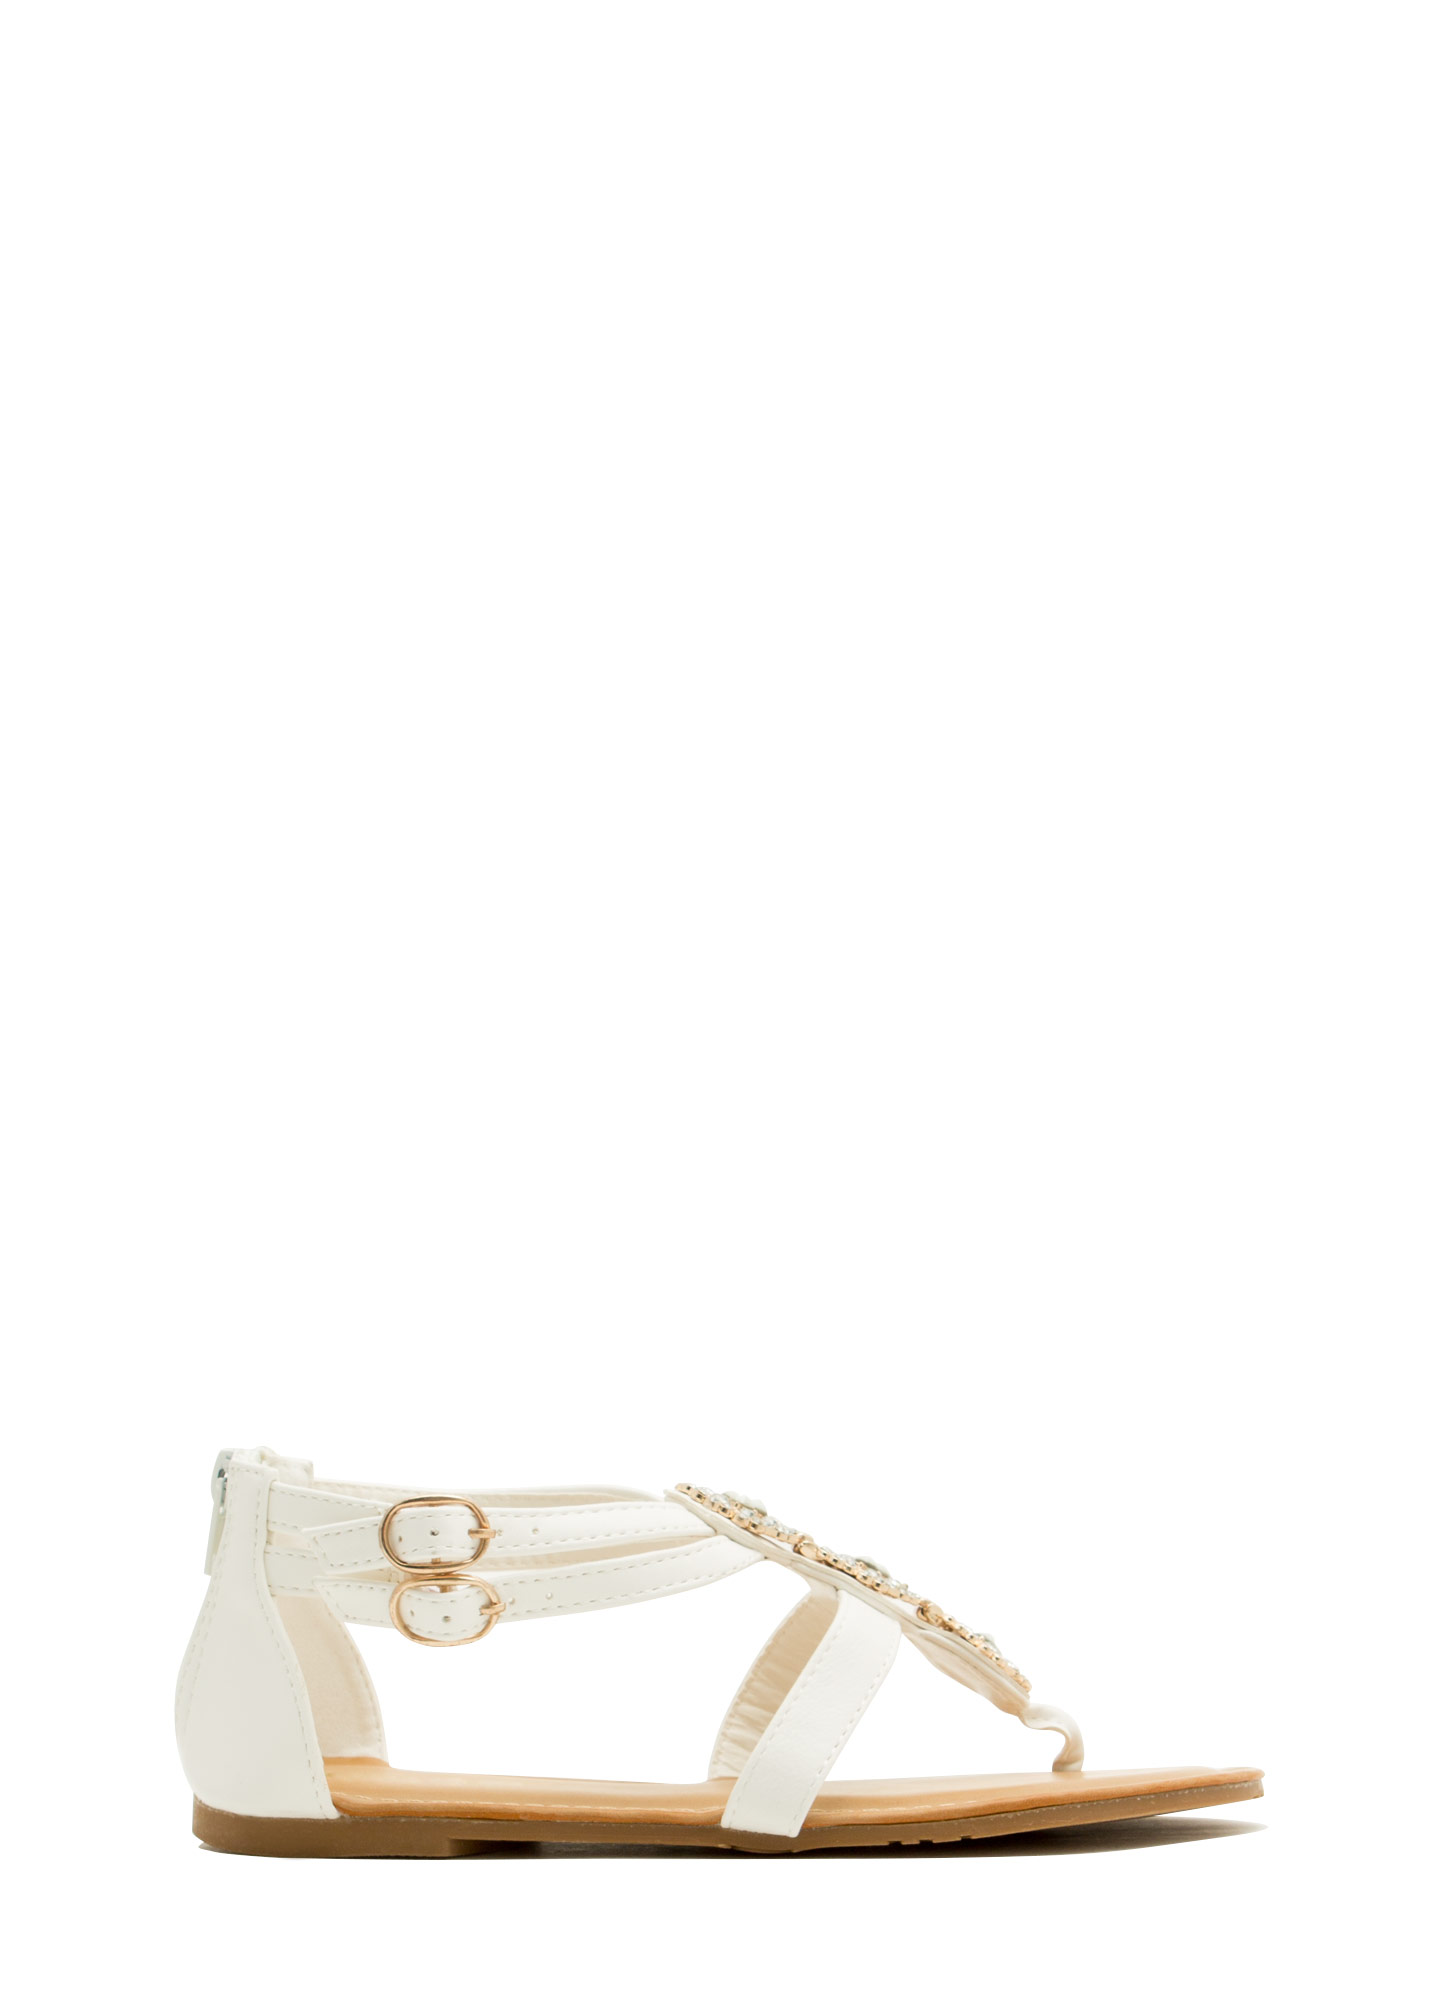 Measure In Jewels Thong Sandals WHITE